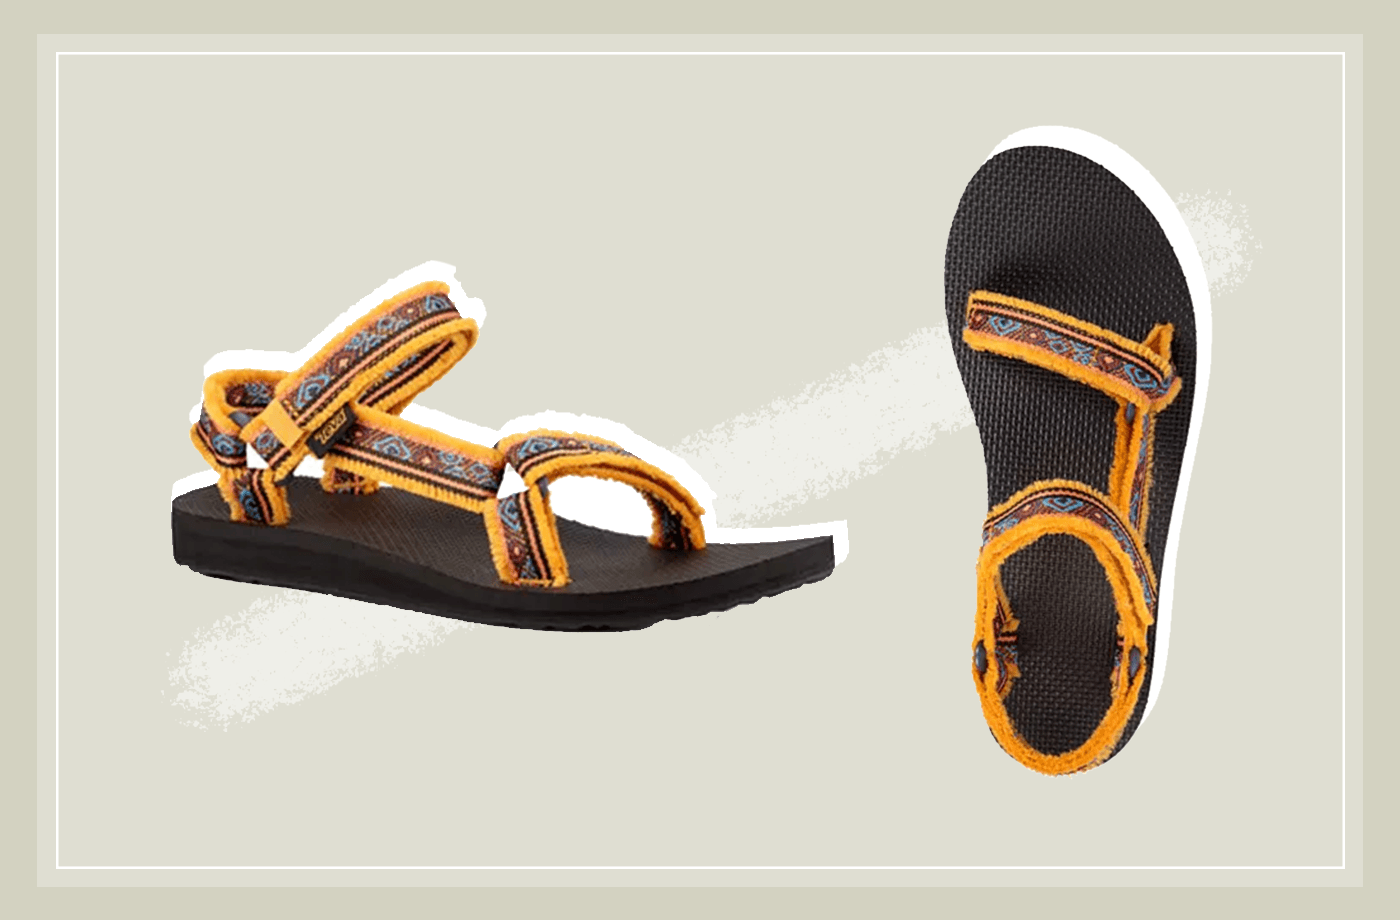 Thumbnail for Tevas are the only sandal you'll want to wear to hit your daily 10,000 steps this summer